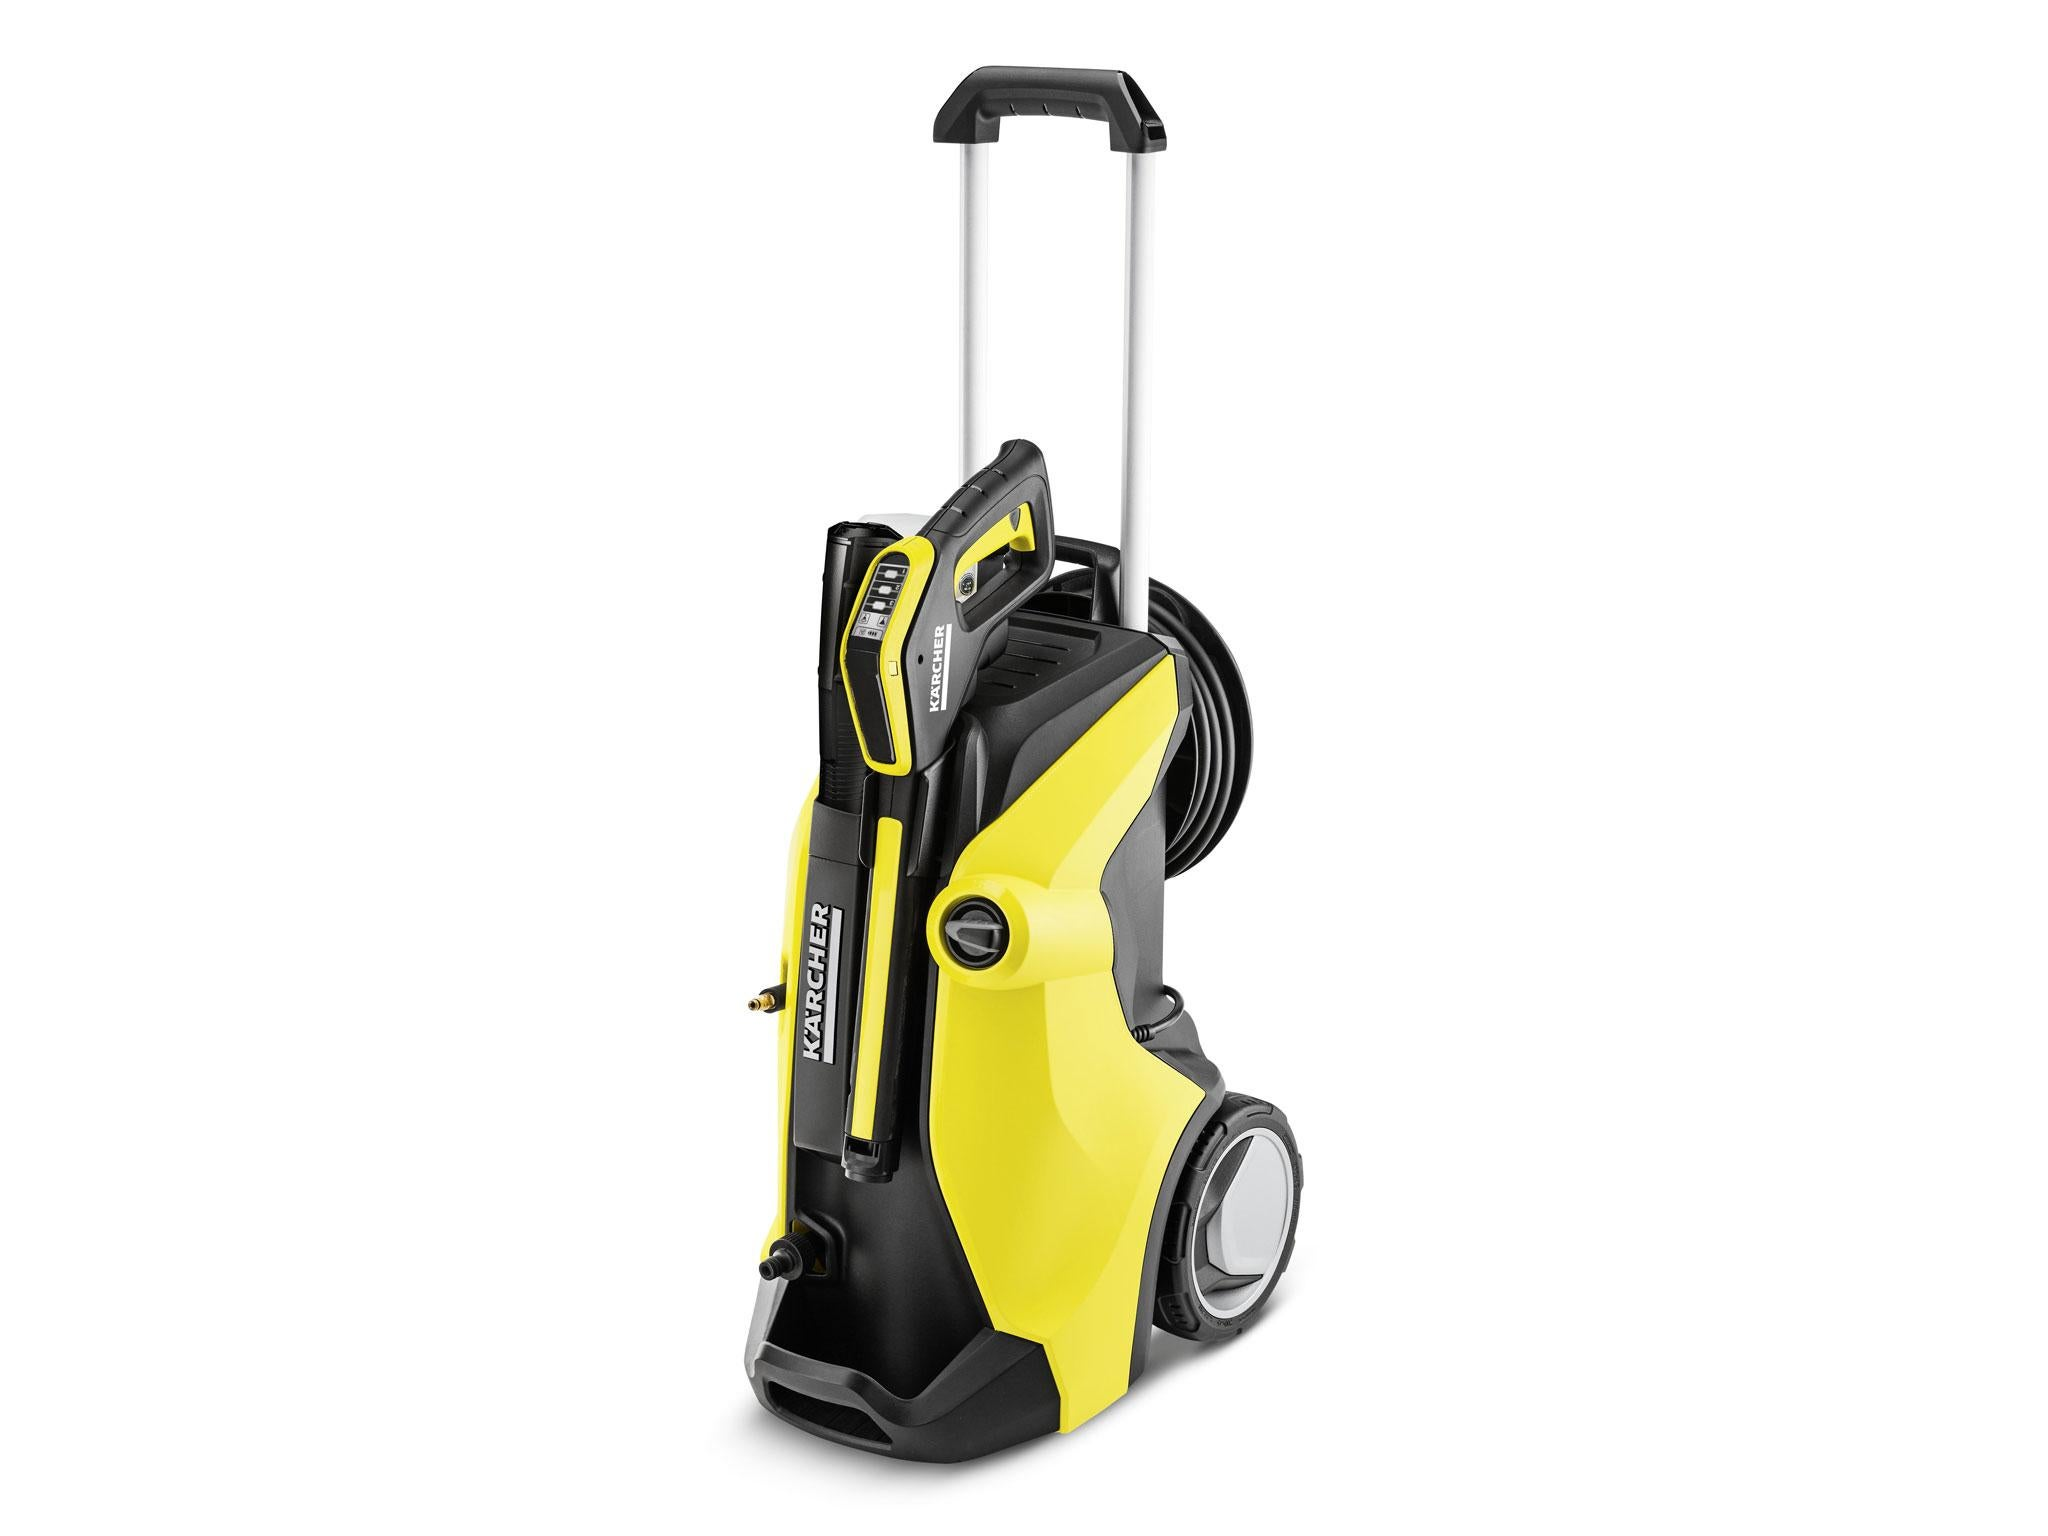 5 best pressure washers | The Independent